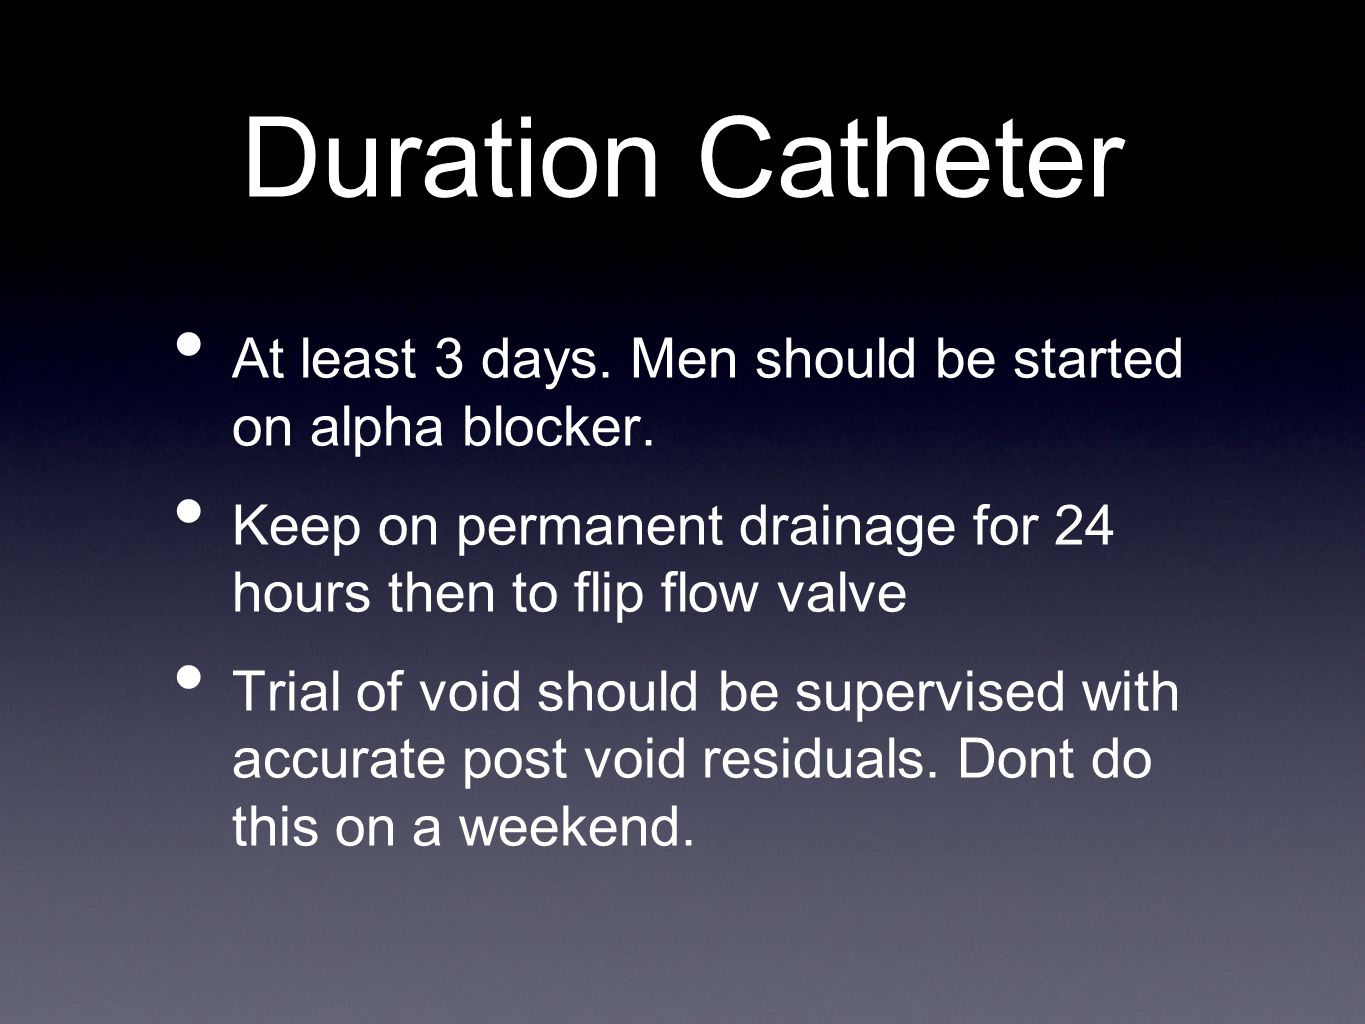 Duration Catheter At least 3 days. Men should be started on alpha blocker. Keep on permanent drainage for 24 hours then to flip flow valve.